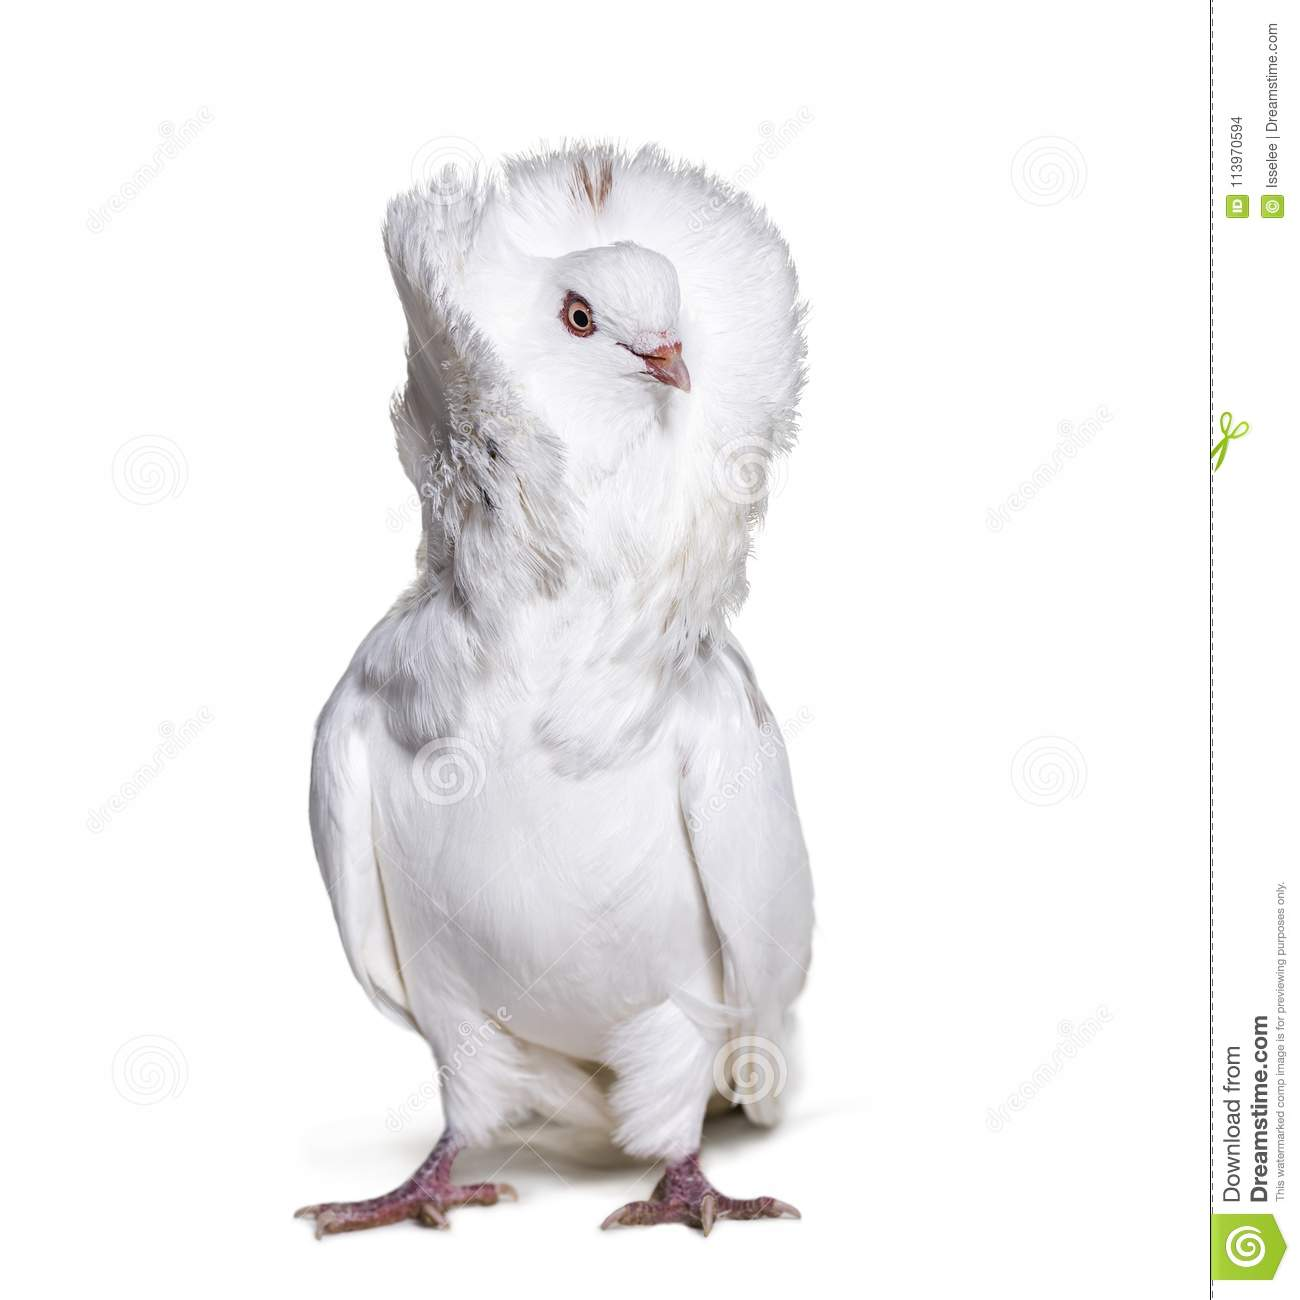 Jacobin pigeon also known as a fancy pigeon or capucin pigeon lo